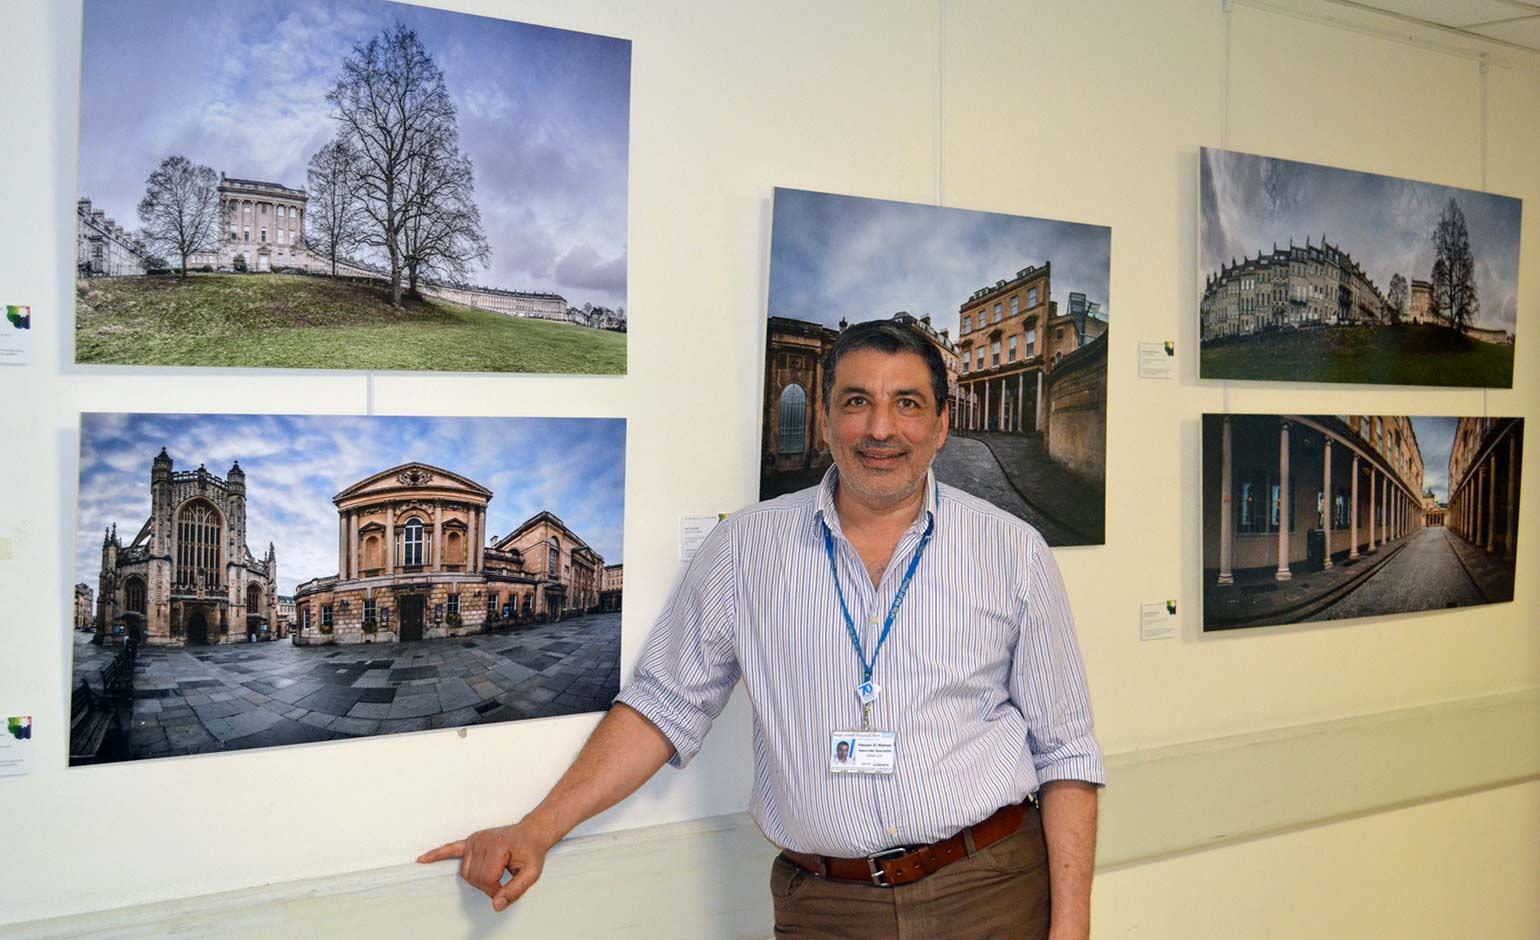 Surgeon recognised with prestigious award for self-taught photography skills